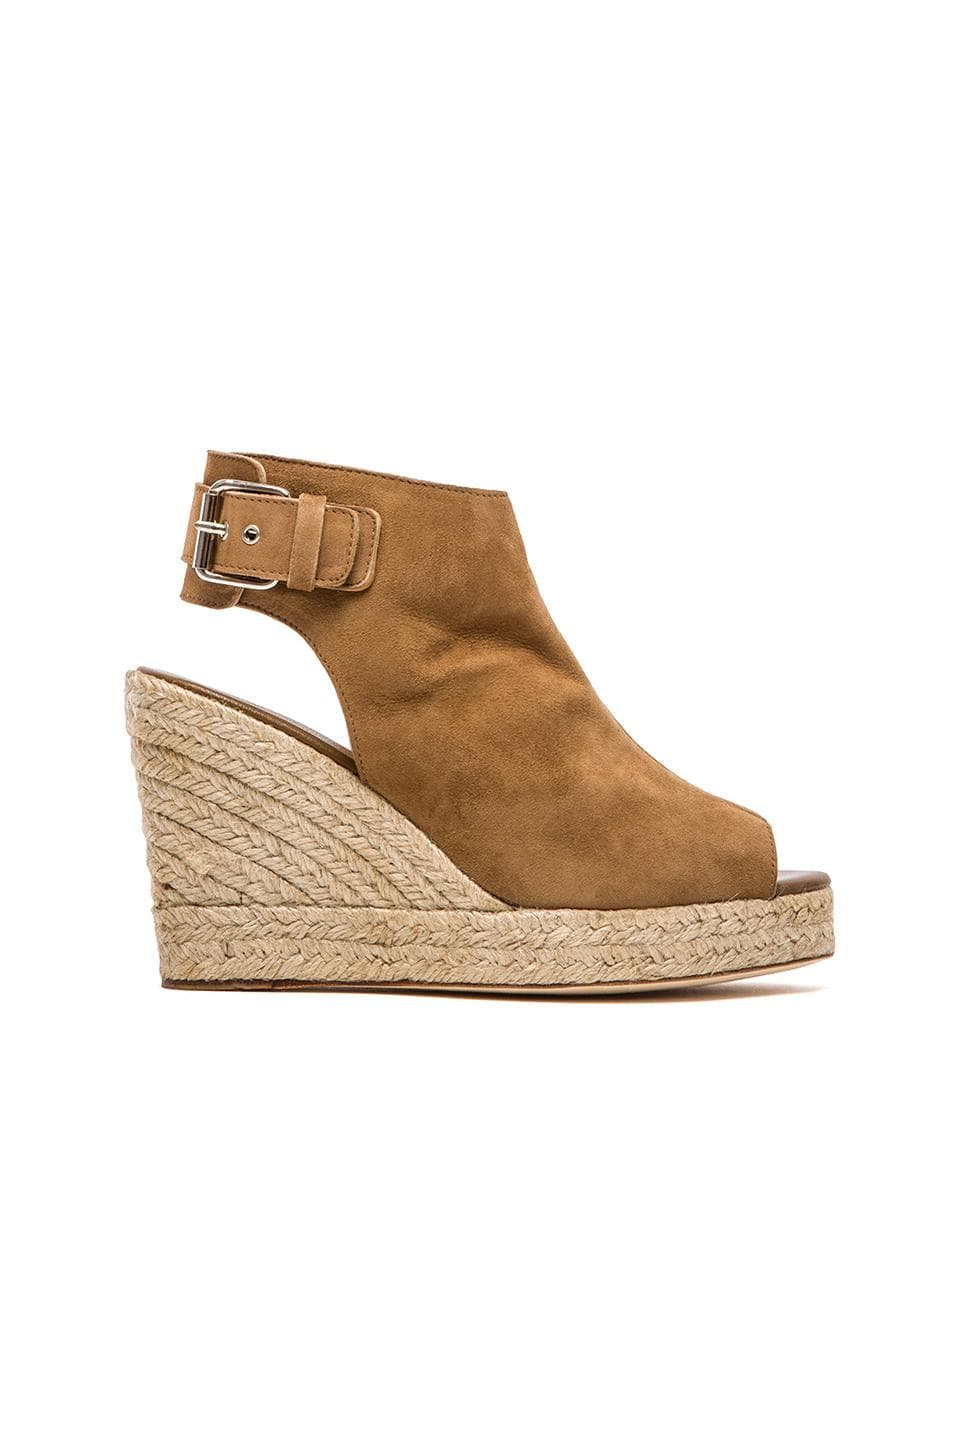 elysewalker los angeles Lesley Wedge in Tan Suede